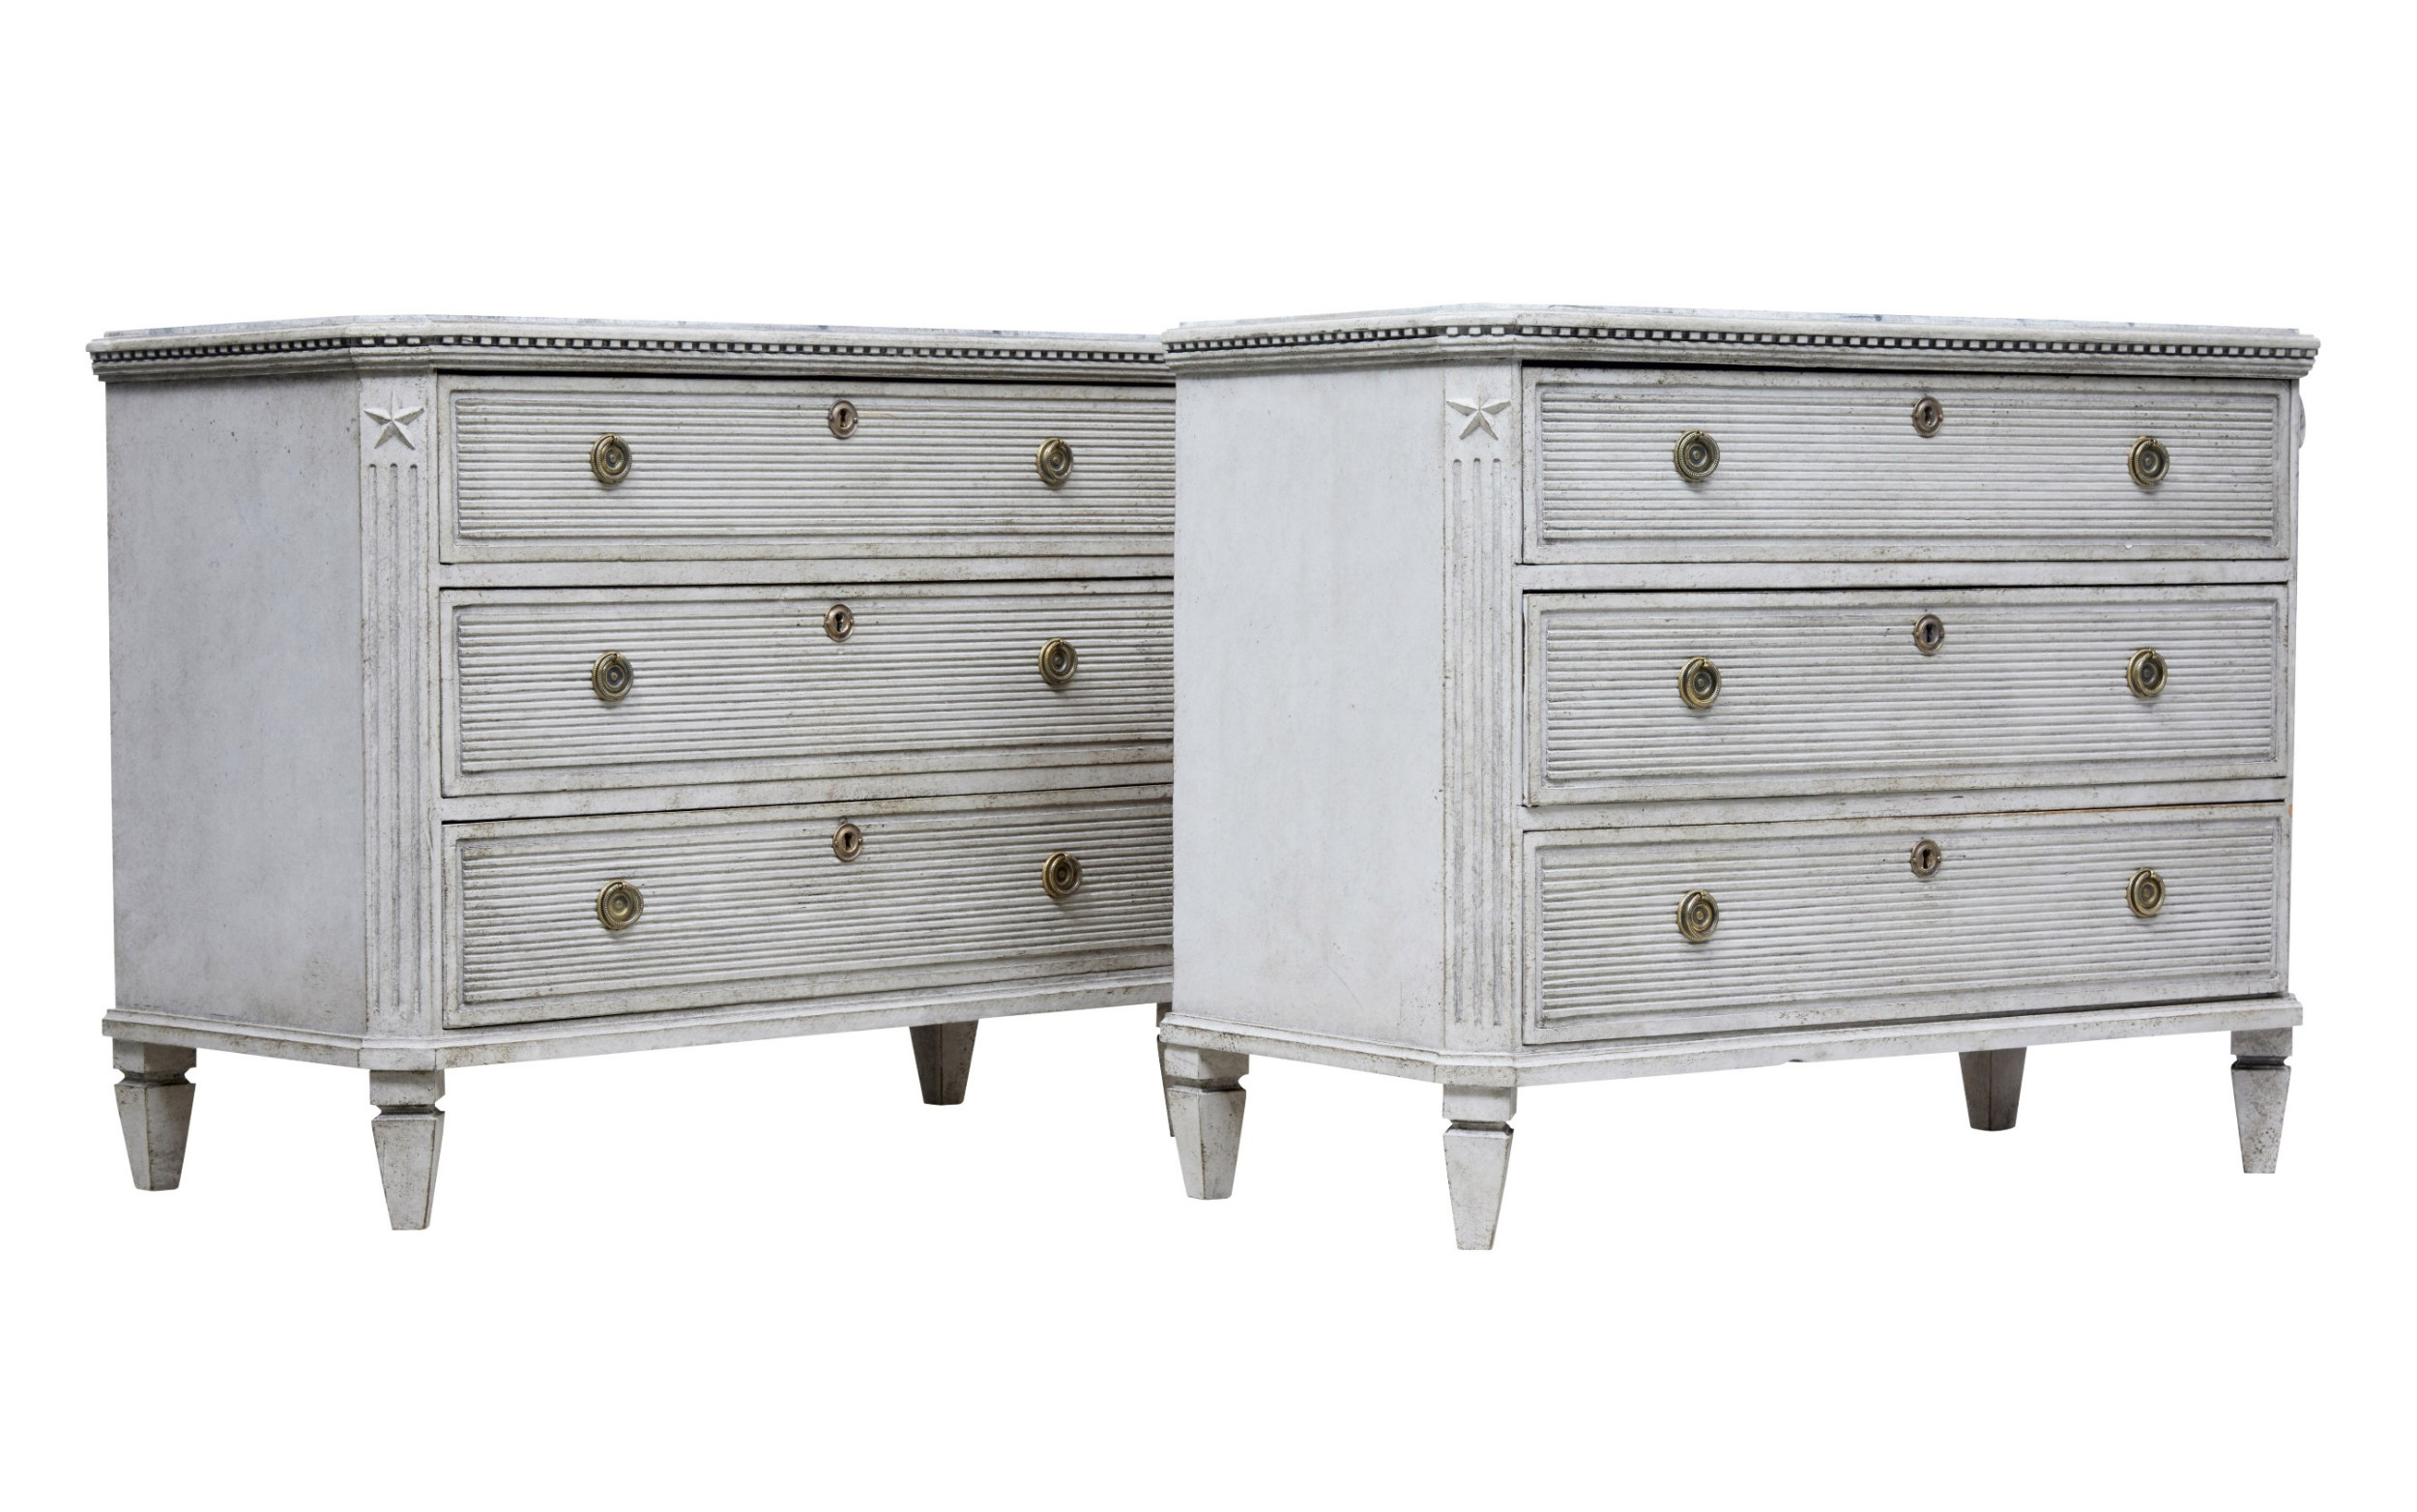 pair of 19th century painted scandinavian chest of drawers